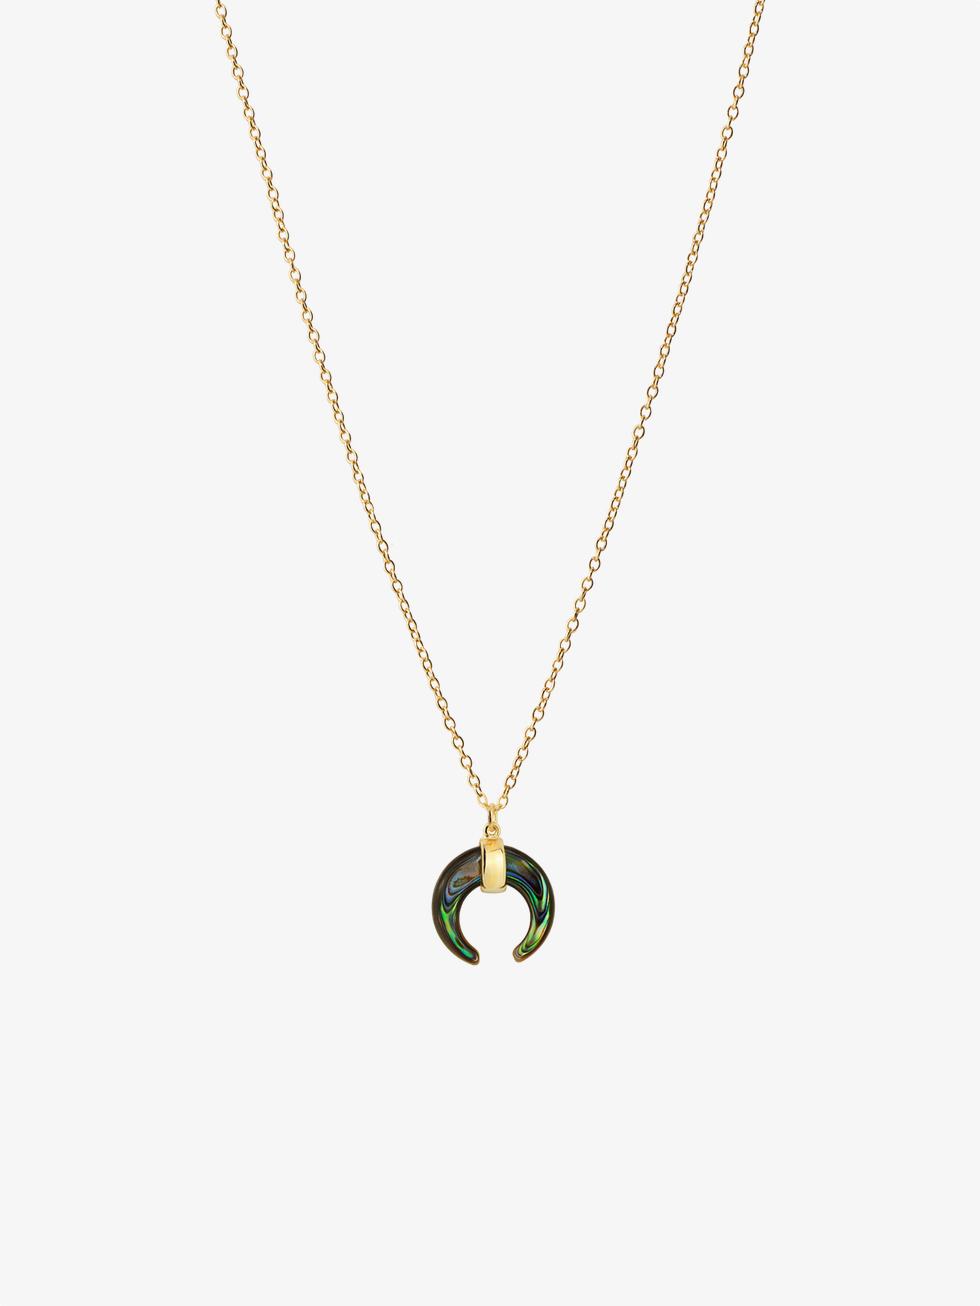 ABALON gold necklace